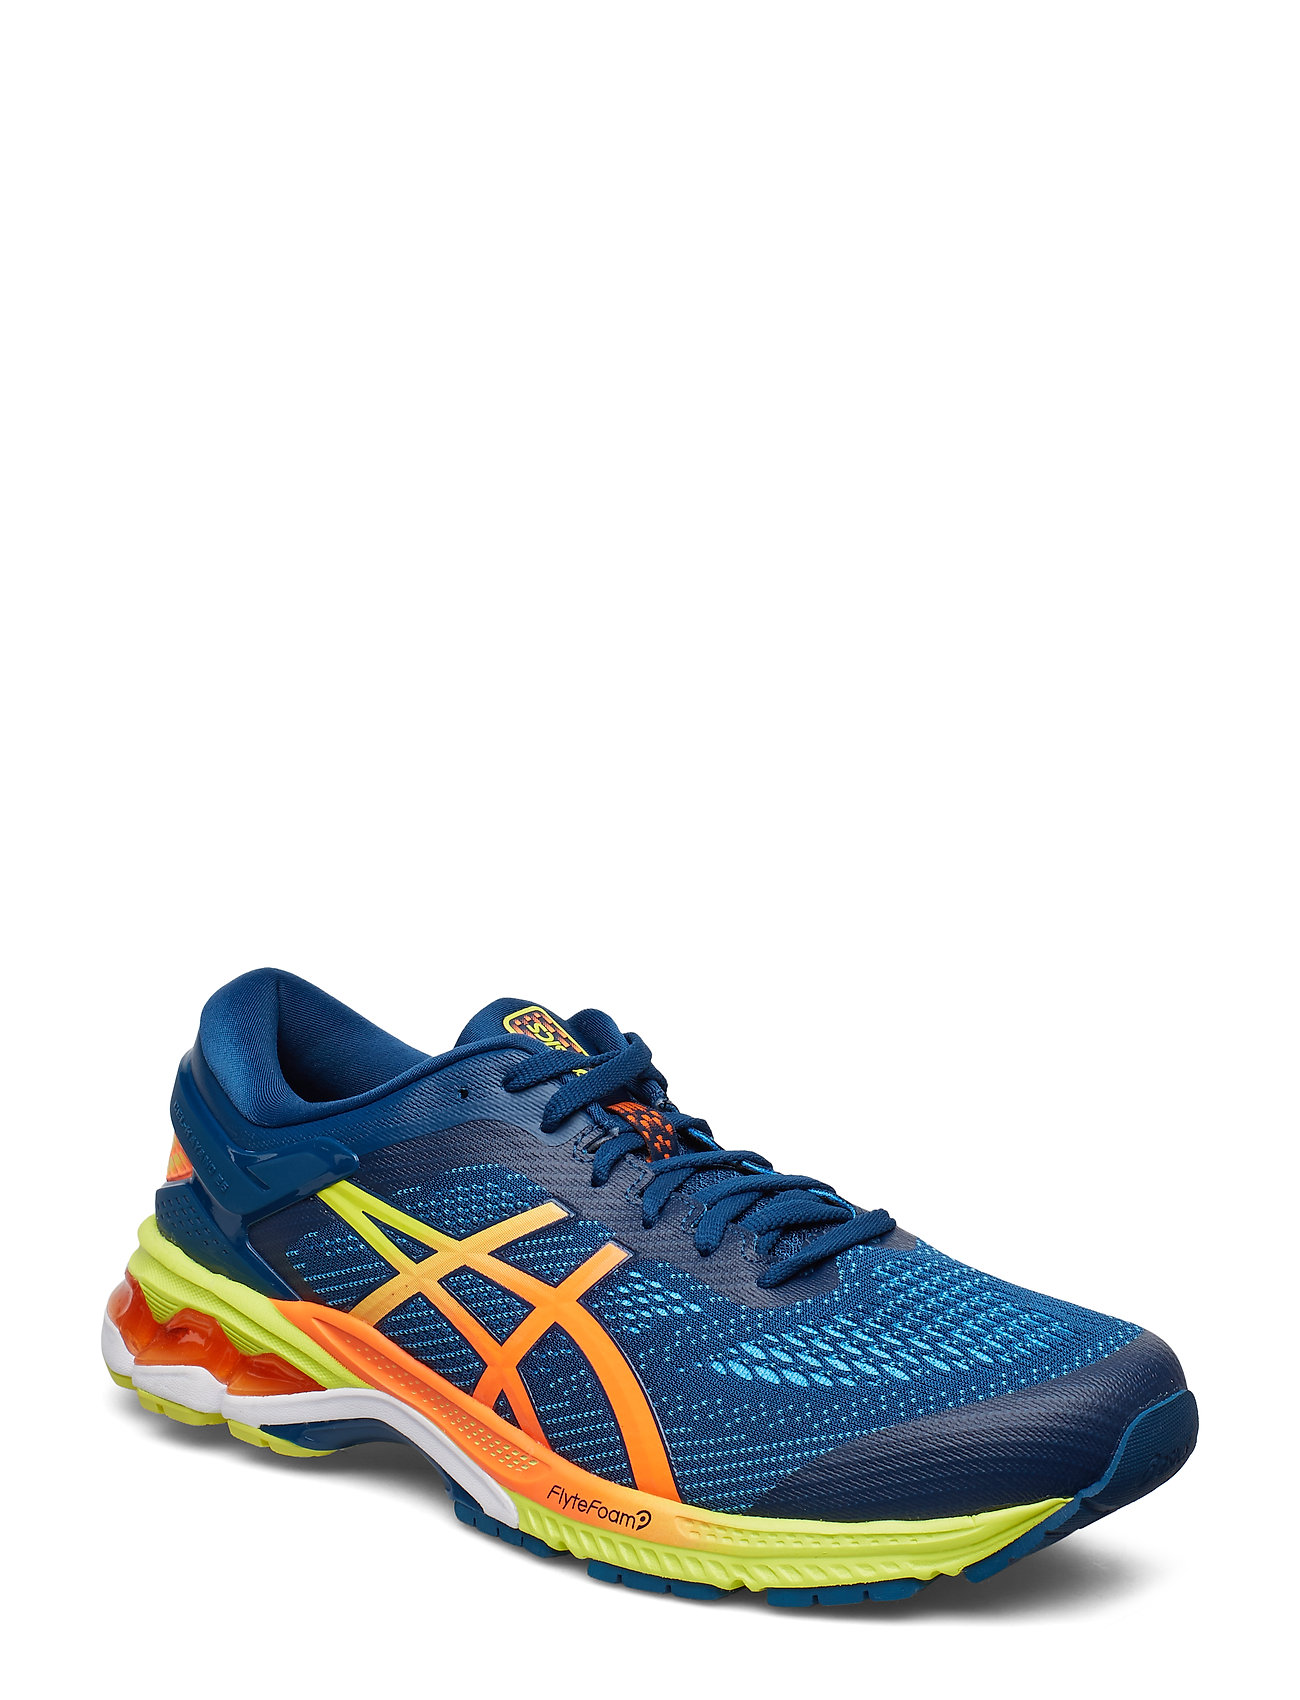 ASICS Gel-Kayano 26 Shoes Sport Shoes Running Shoes Blau ASICS